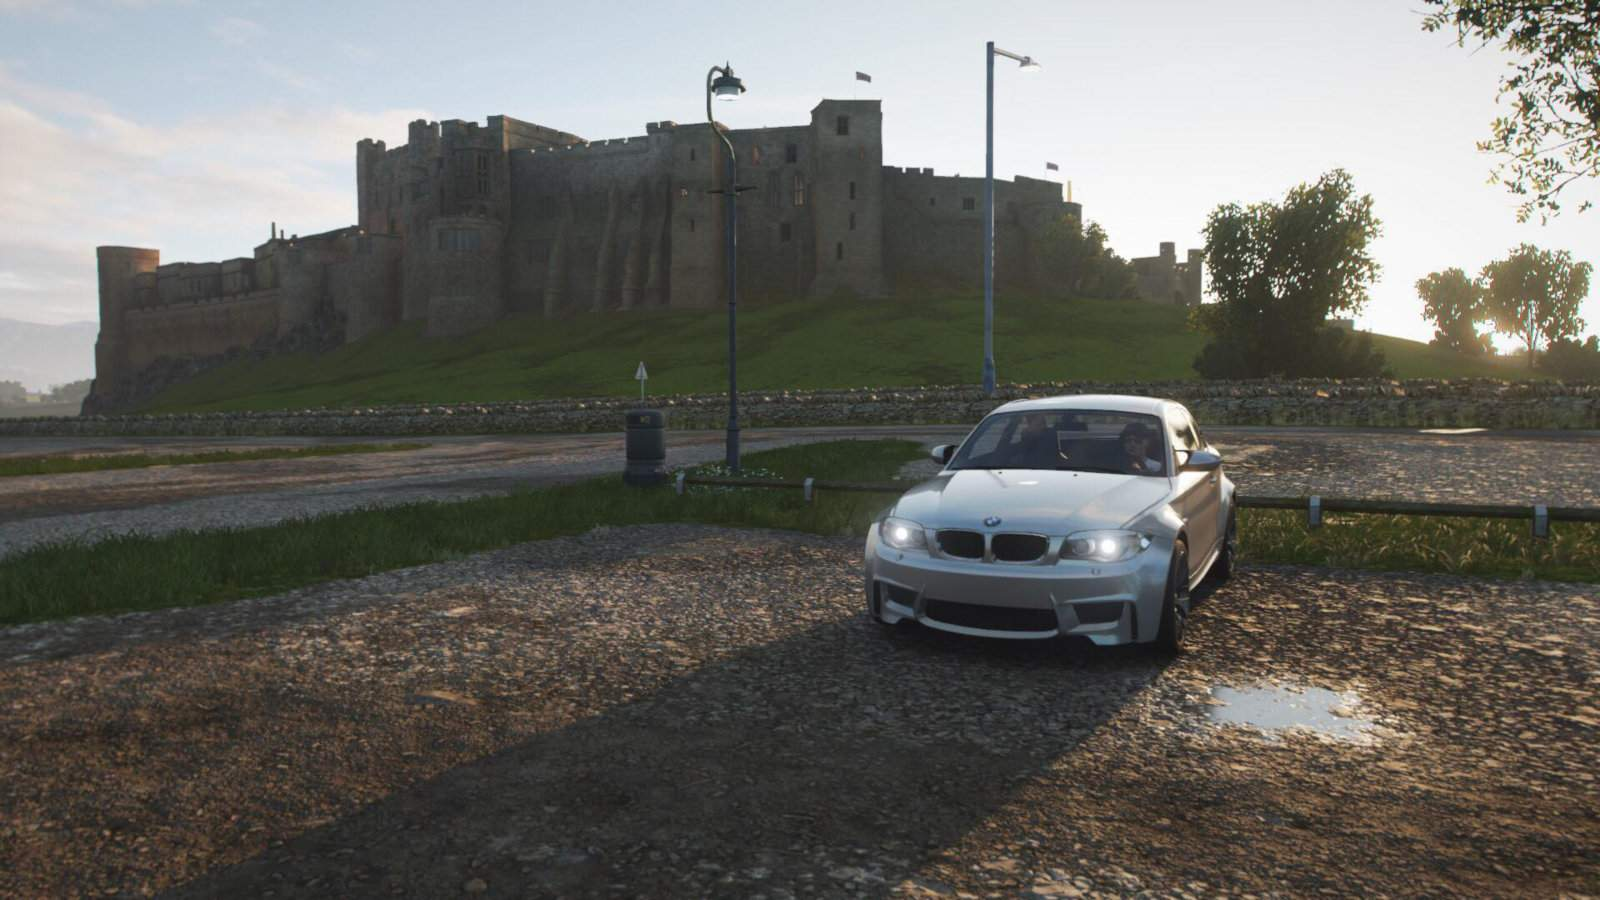 The best video games to inspire travel - you can actually make Bamburgh Castle your home in Forza Horizon 4!